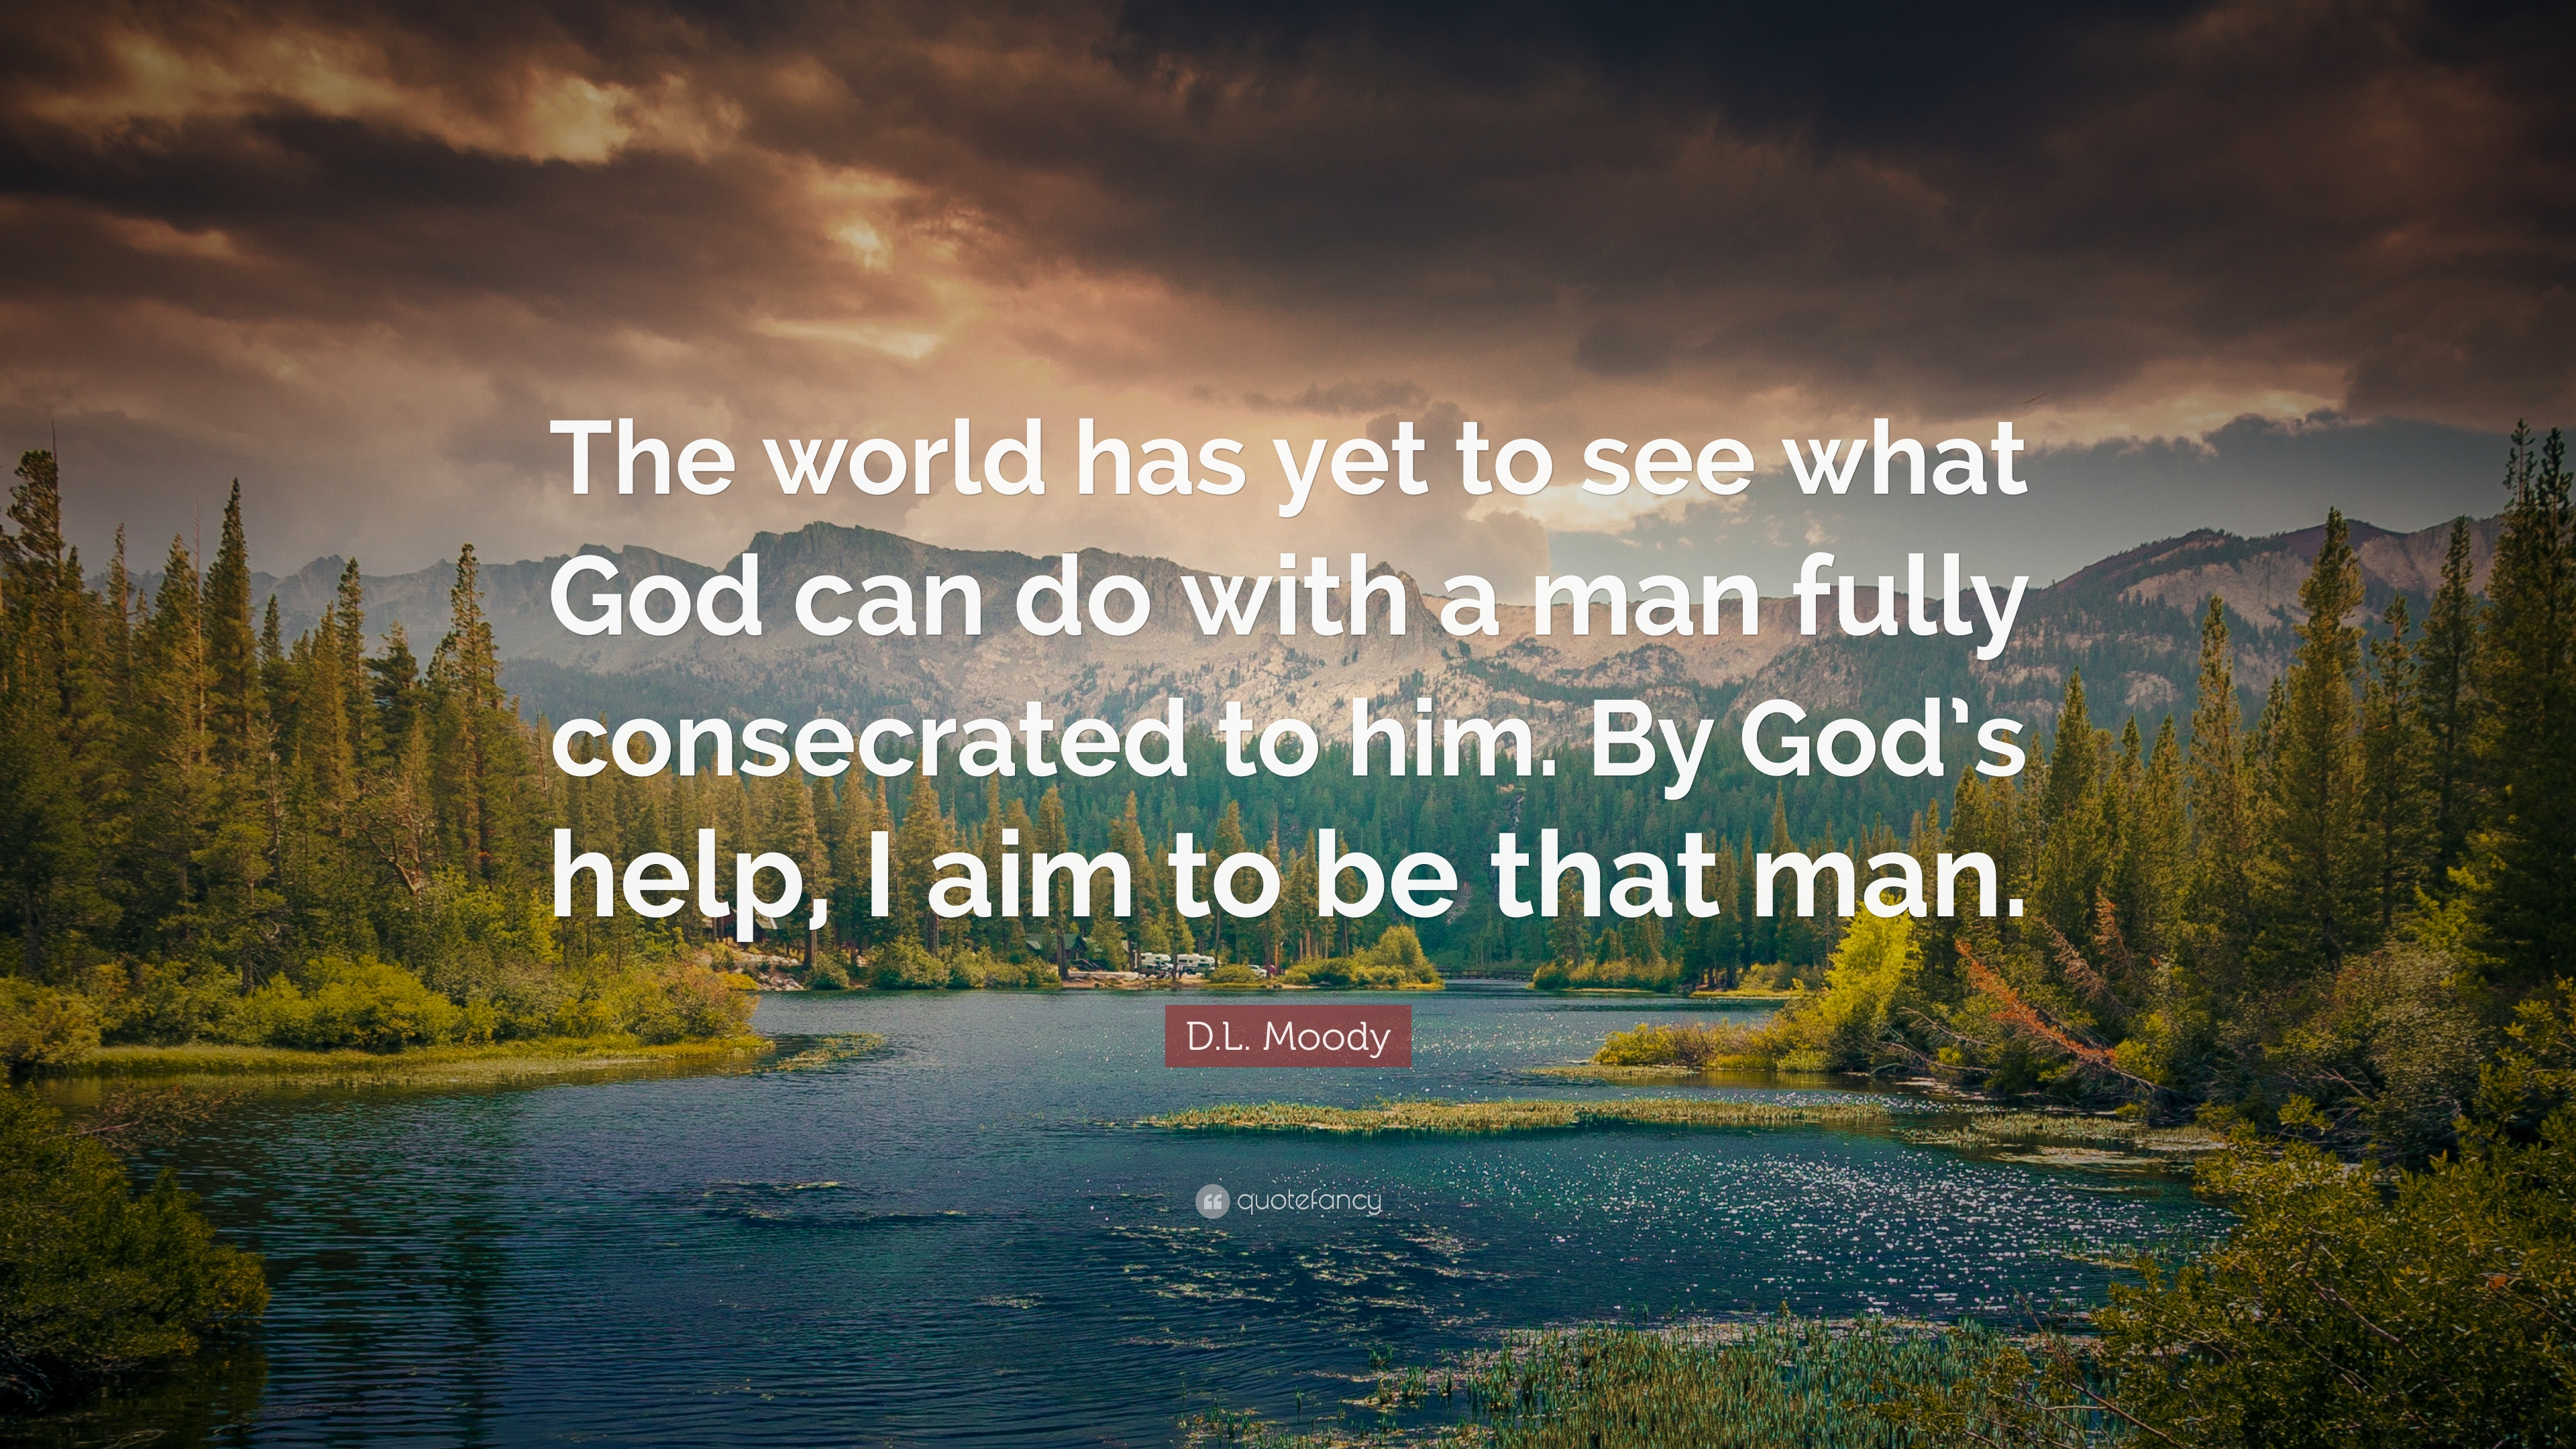 D L Moody Quote The World Has Yet To See What God Can Do With A Man Fully Consecrated To Him By God S Help I Aim To Be That Man 12 Wallpapers Quotefancy